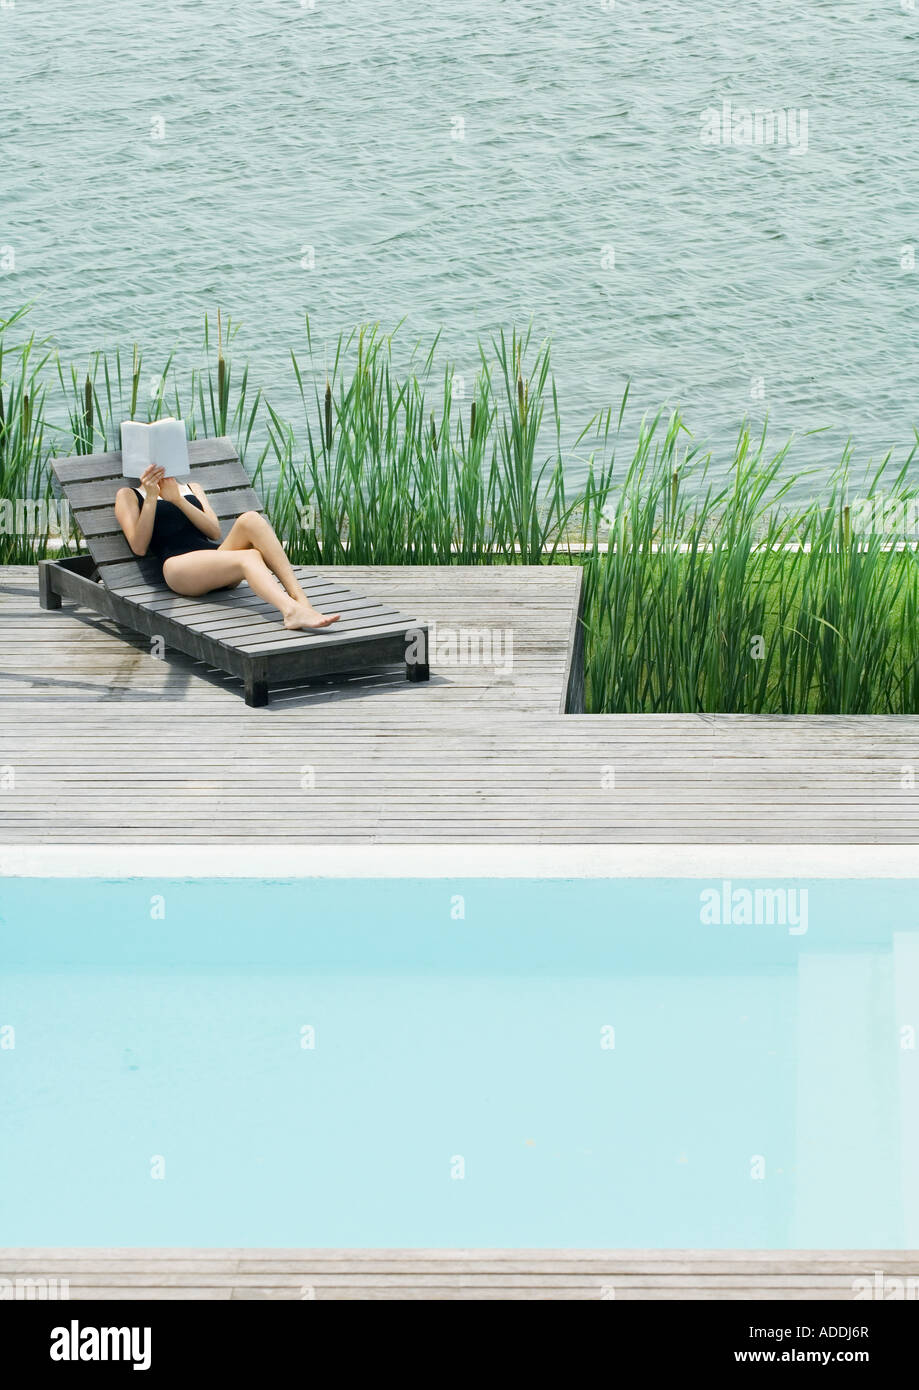 Young woman lying on lounge chair, reading - Stock Image